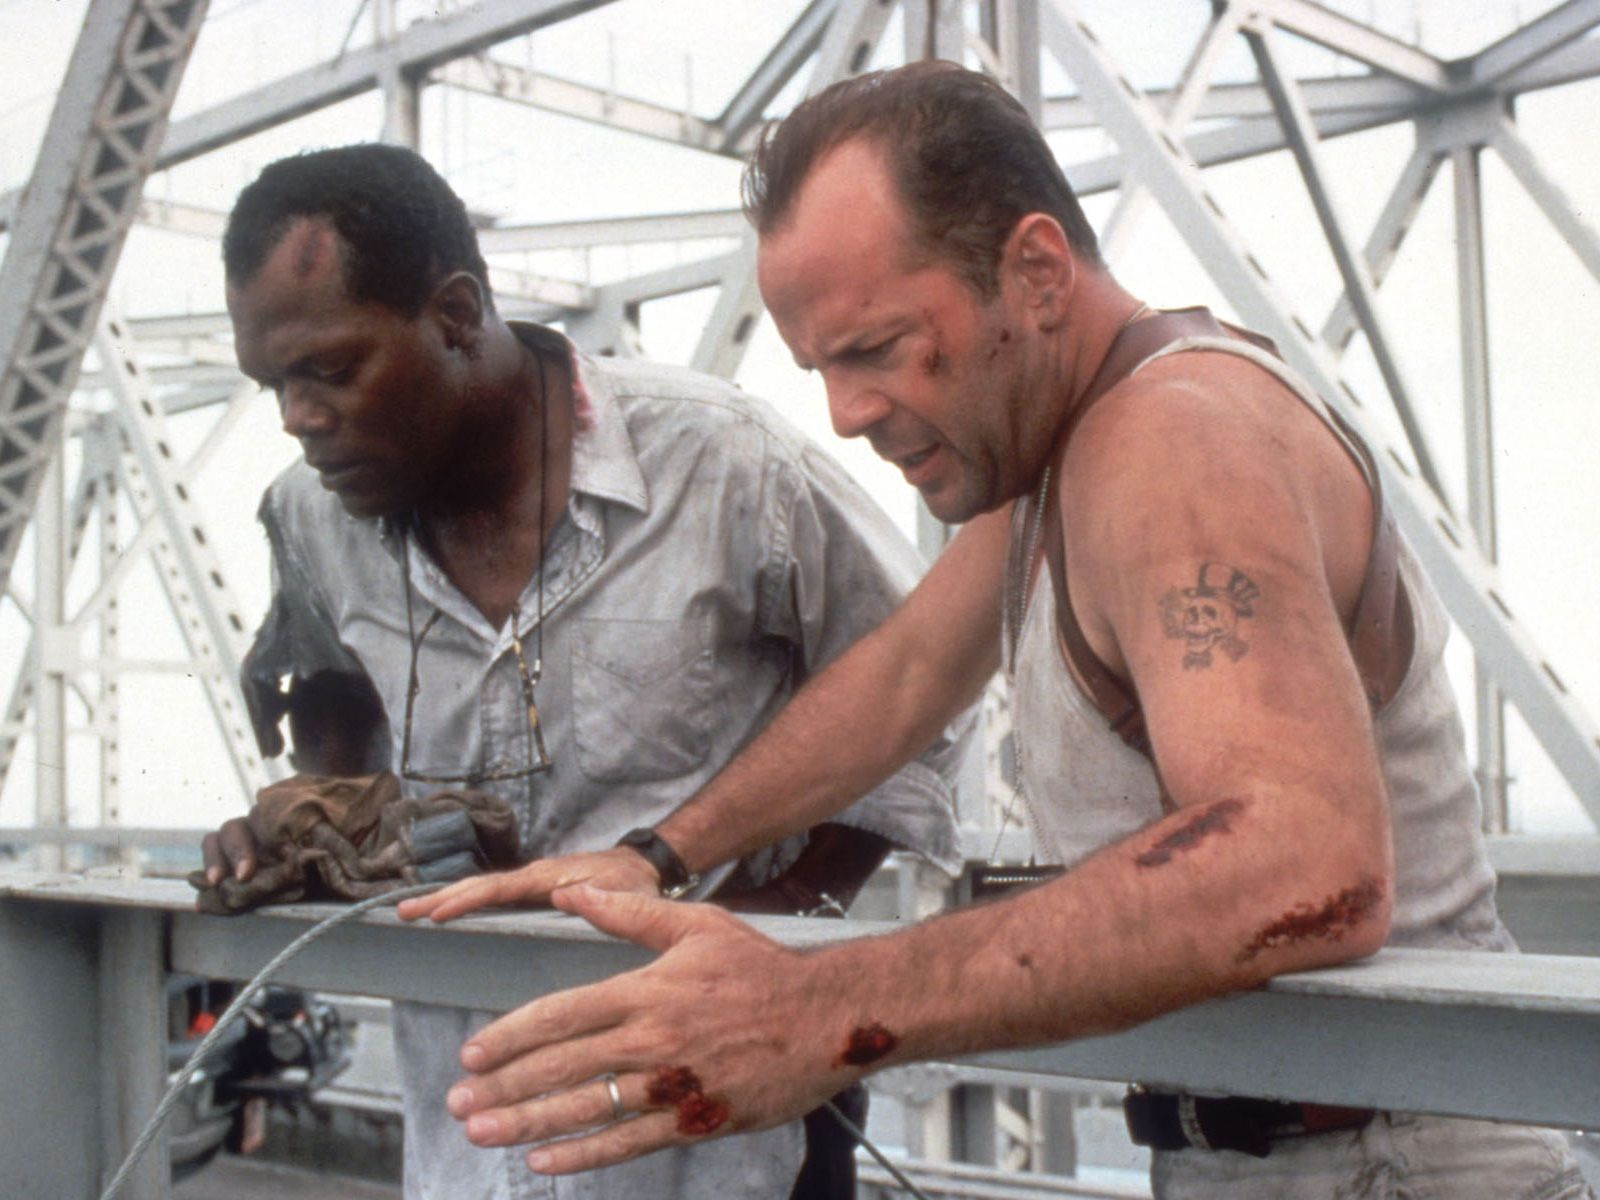 DIE HARD WITH A VENGEANCE Review. DIE HARD WITH A ... | 1600 x 1200 jpeg 411kB